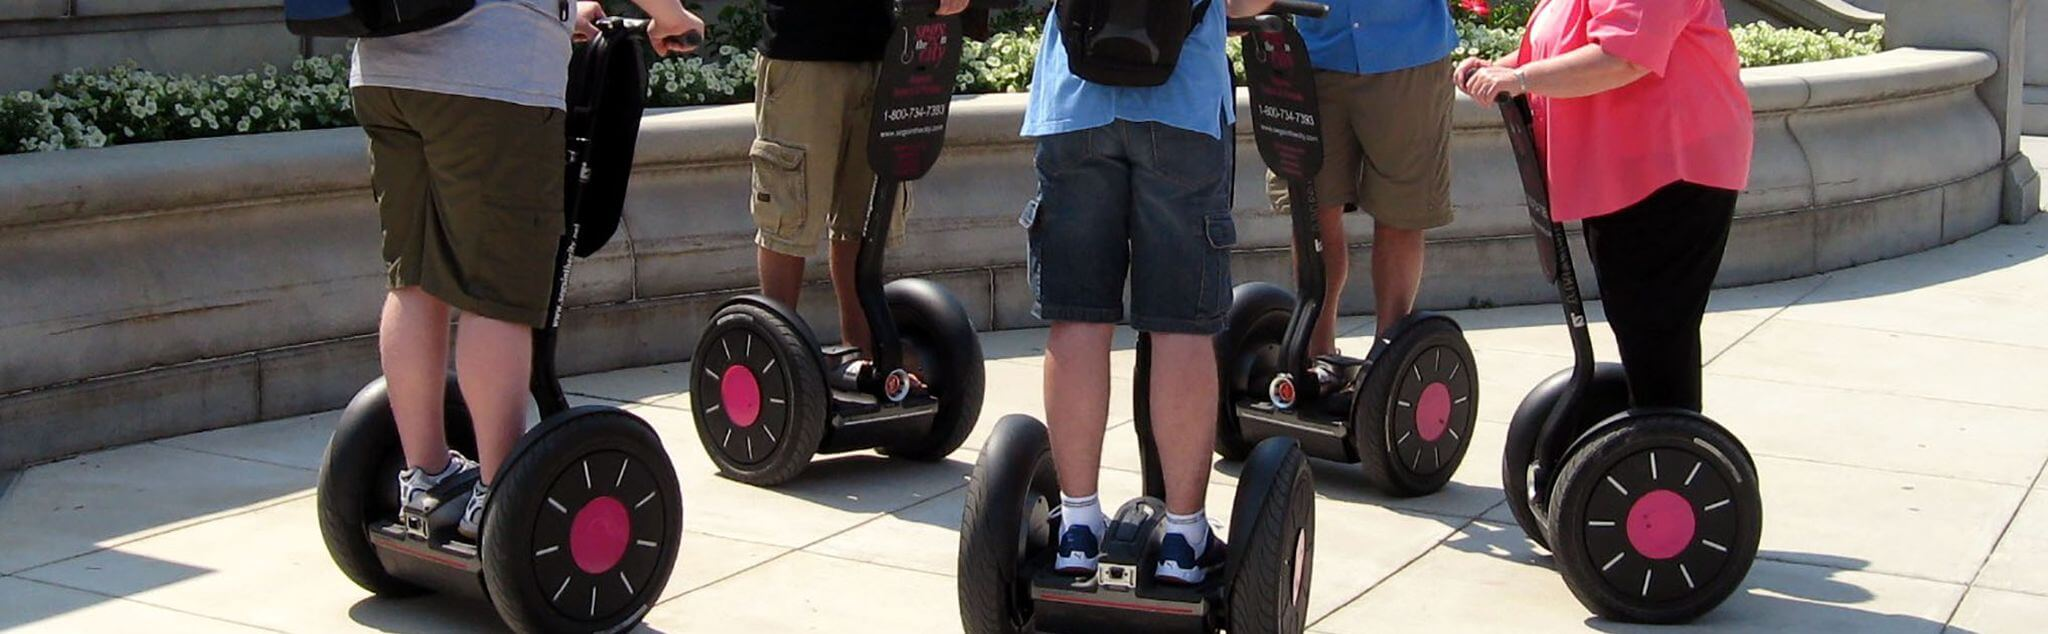 Segway in Sevilla (City)